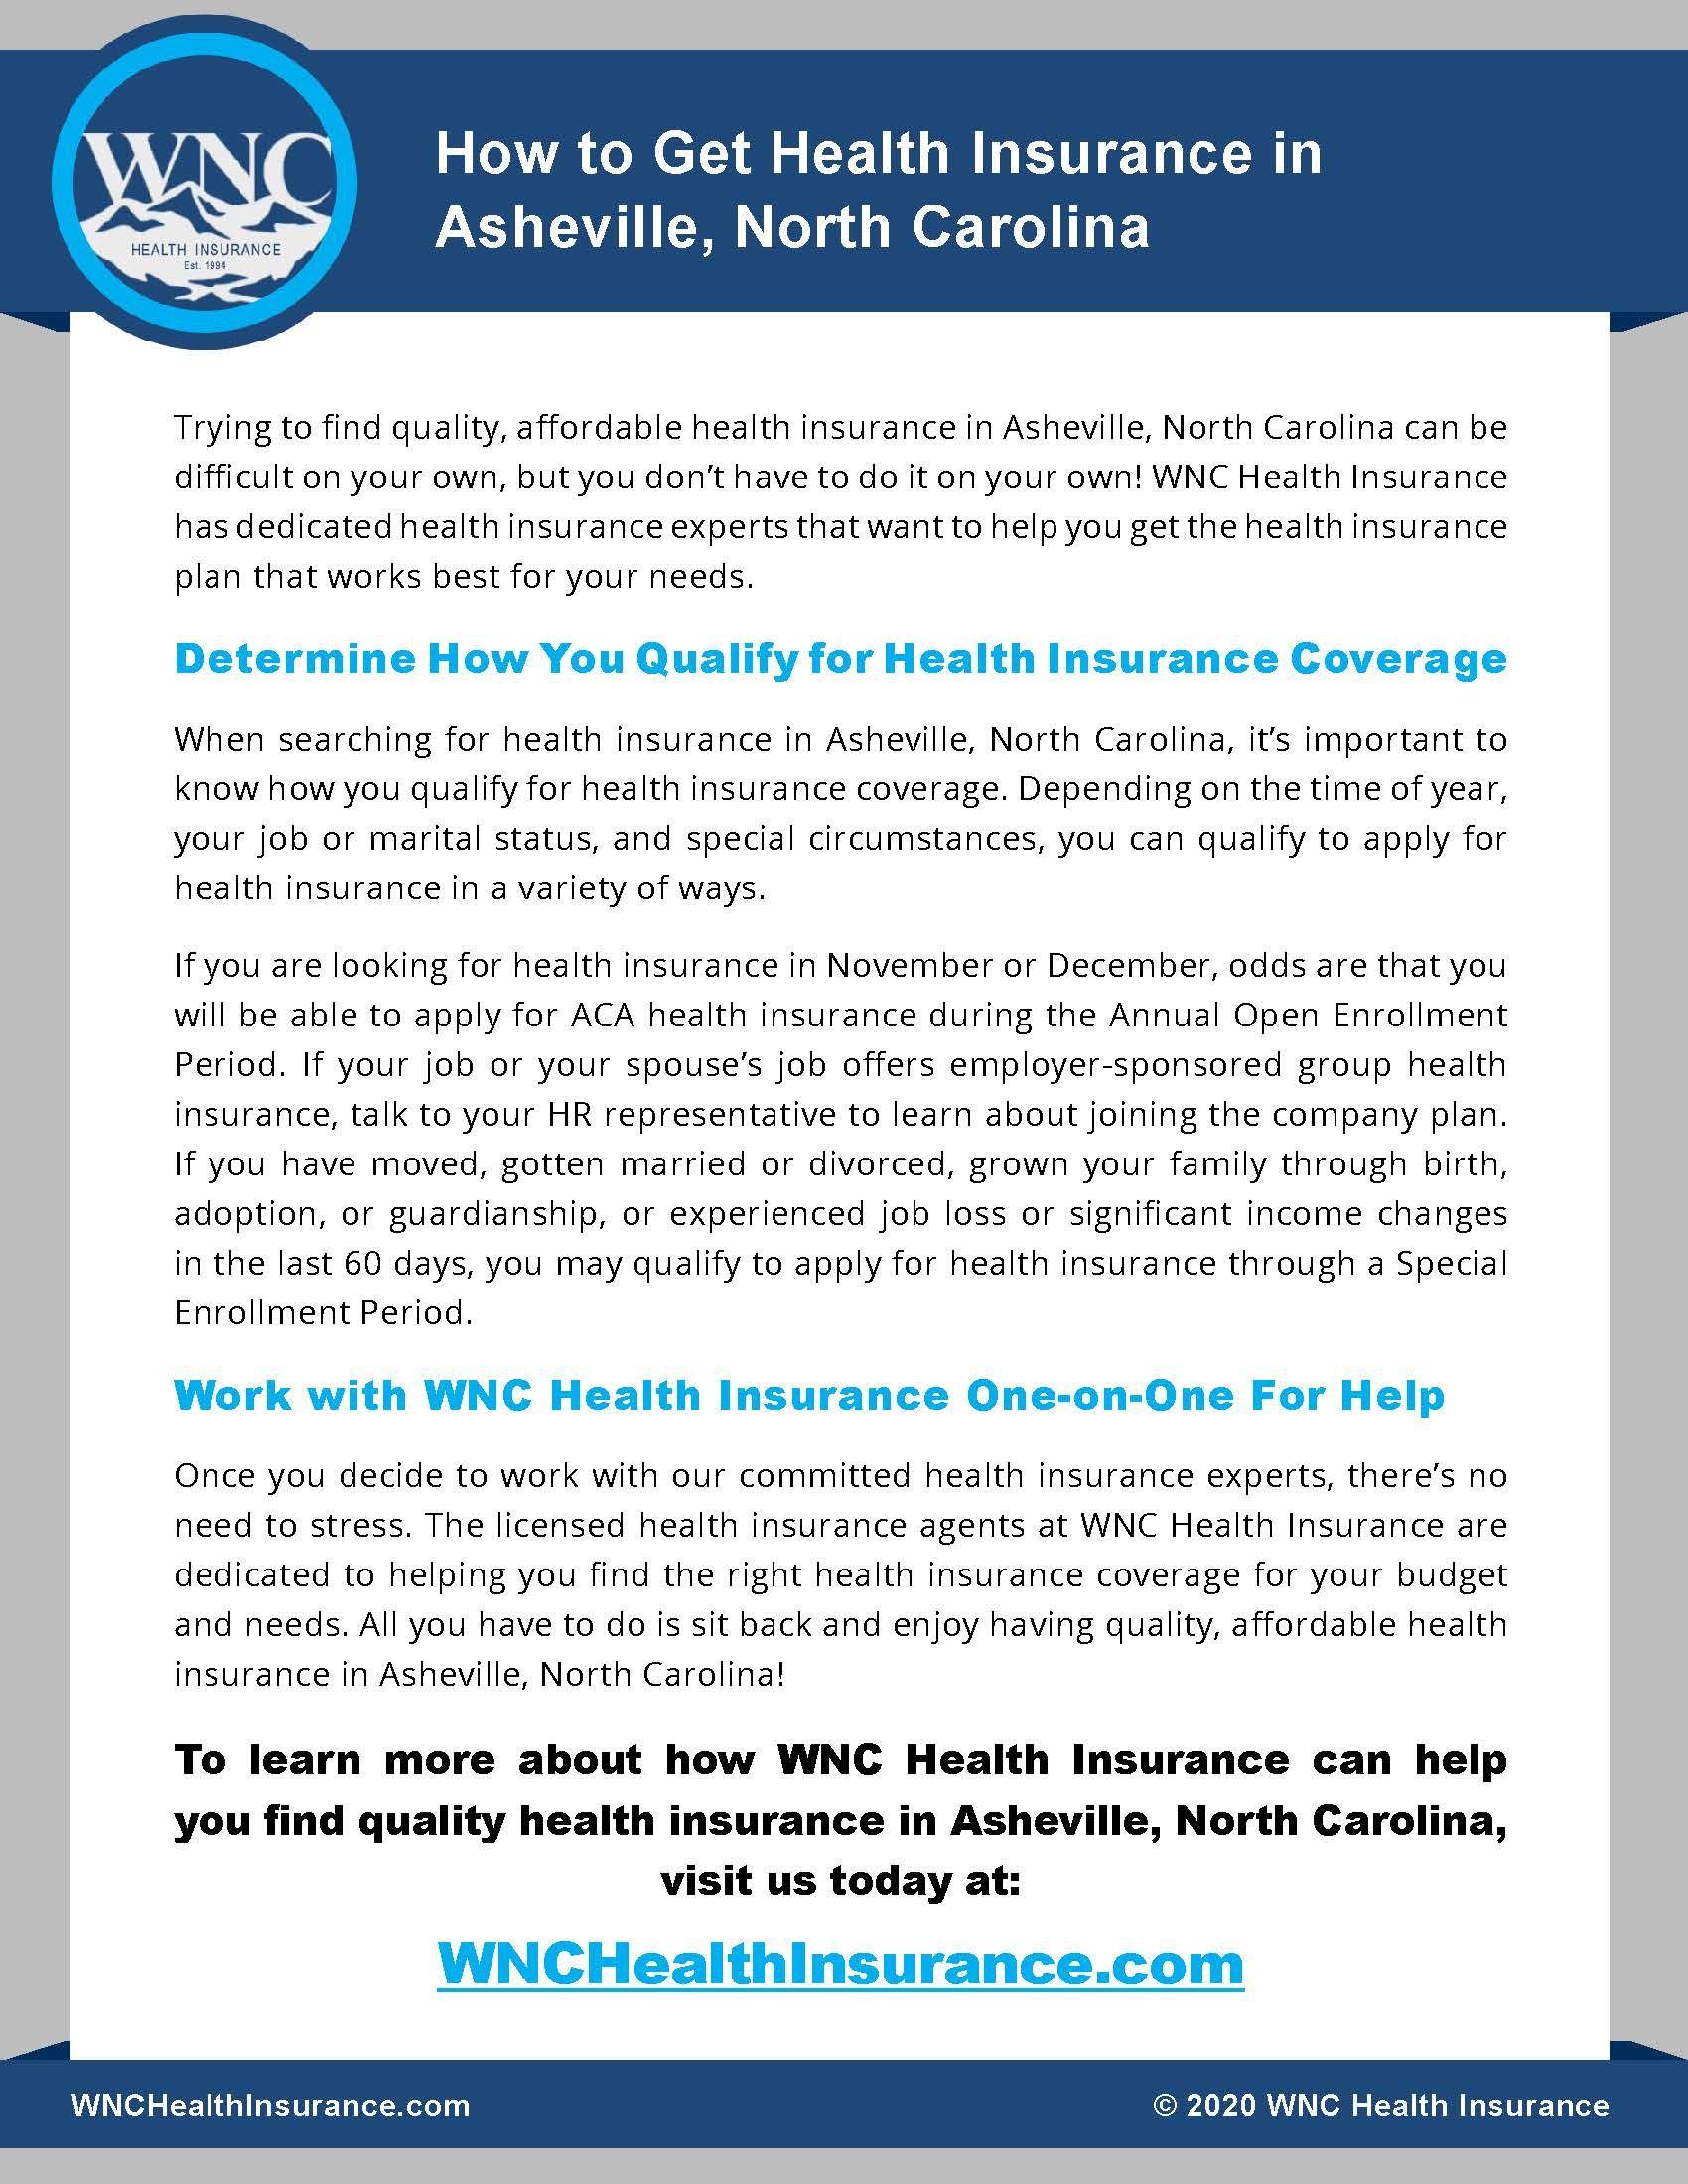 How to Get Health Insurance in Asheville, North Carolina